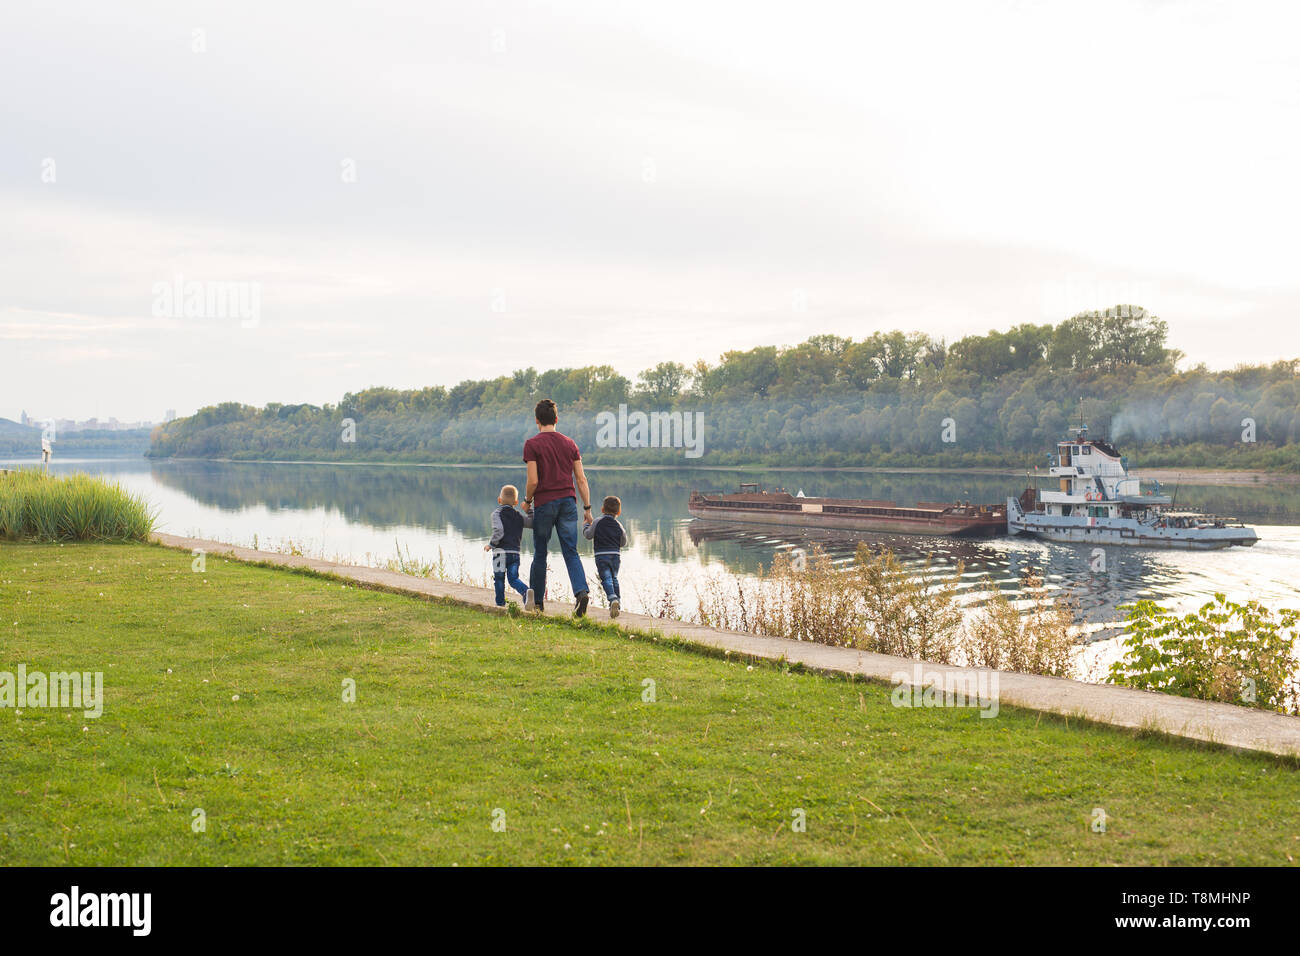 People and nature concept - Father walking with two boys by the water - Stock Image